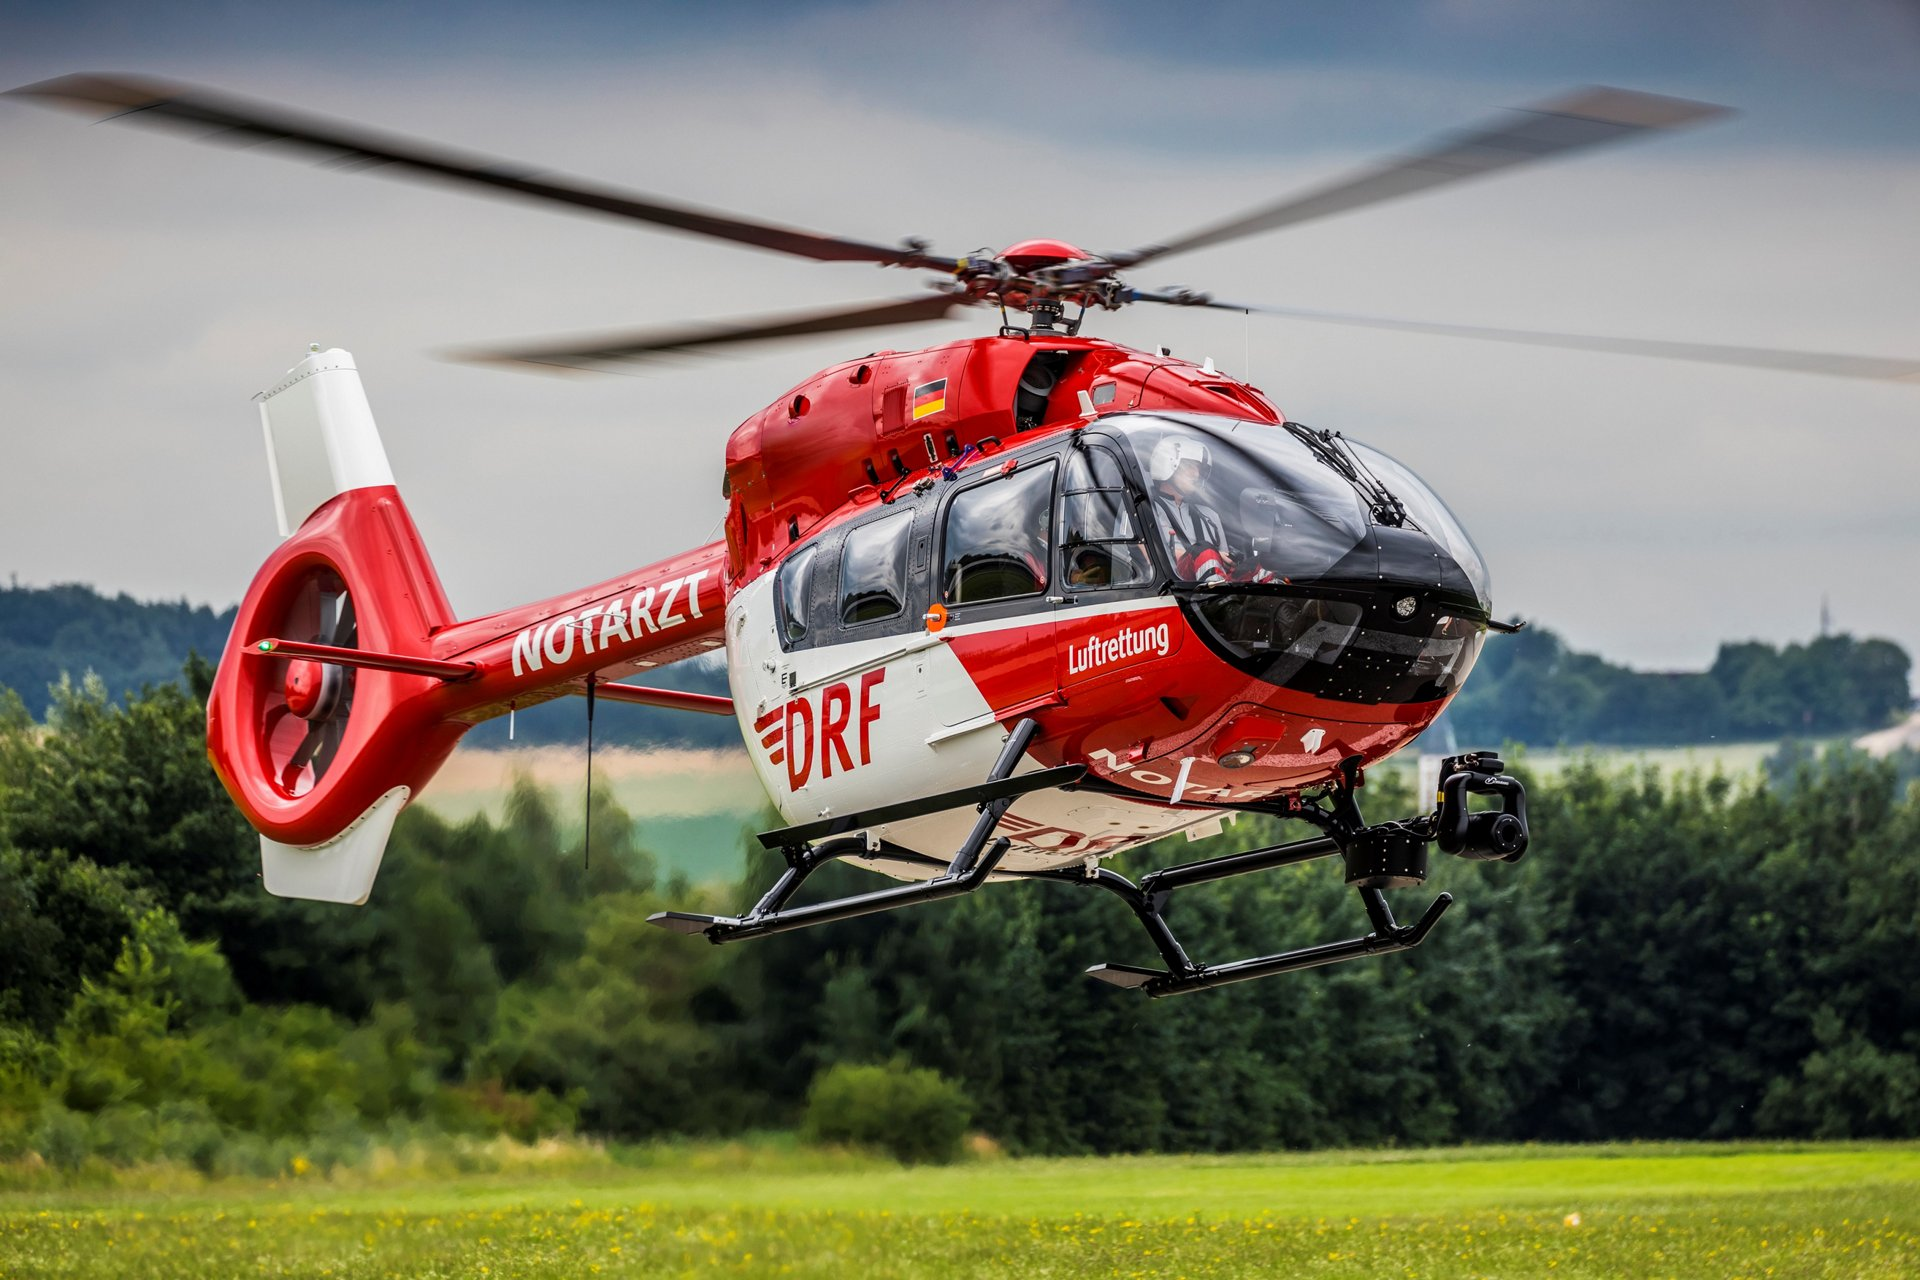 At Helitech, Airbus Helicopters and DRF Luftrettung have